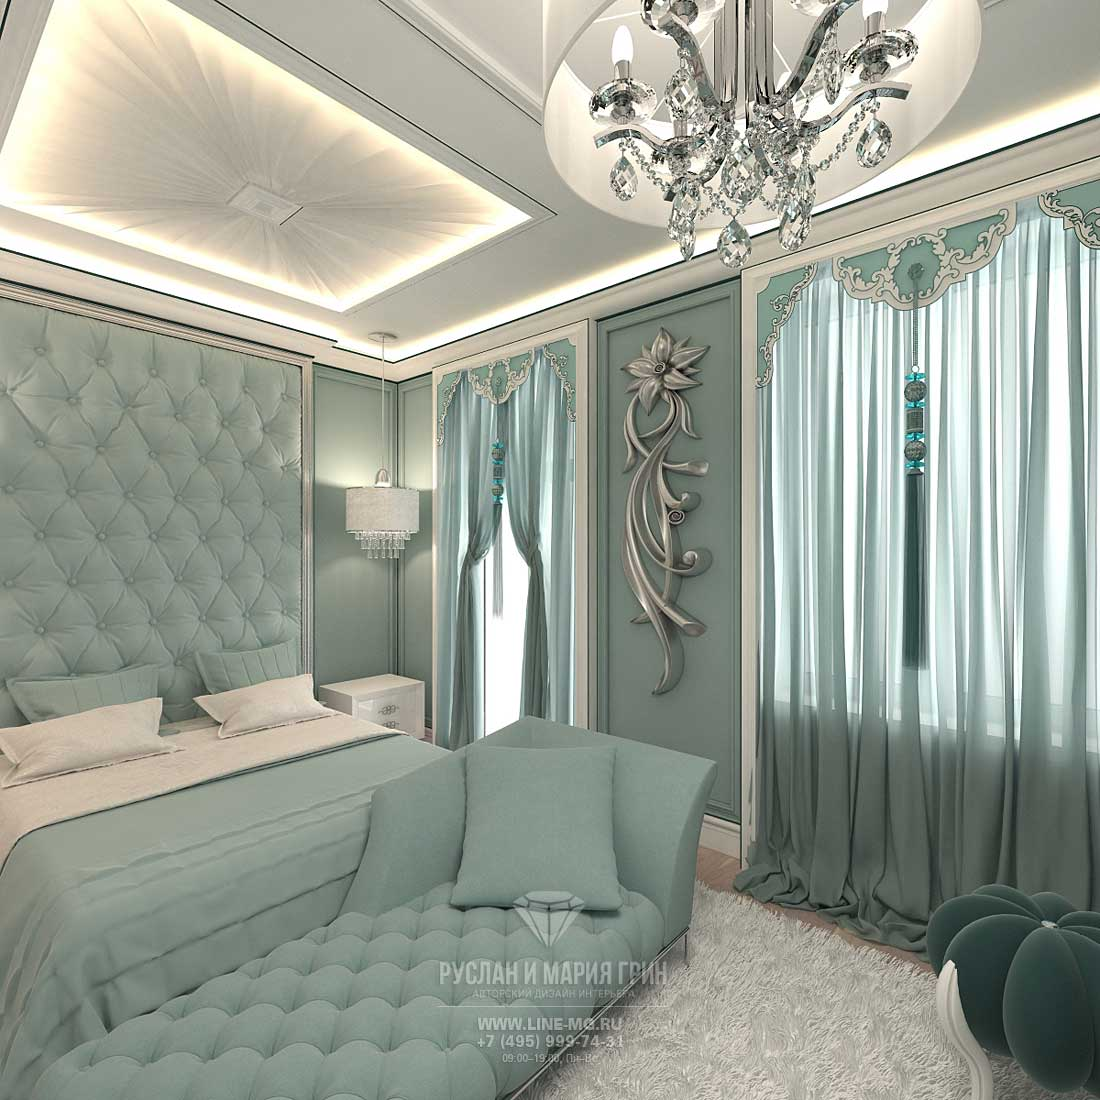 Townhouse turquoise bedroom design